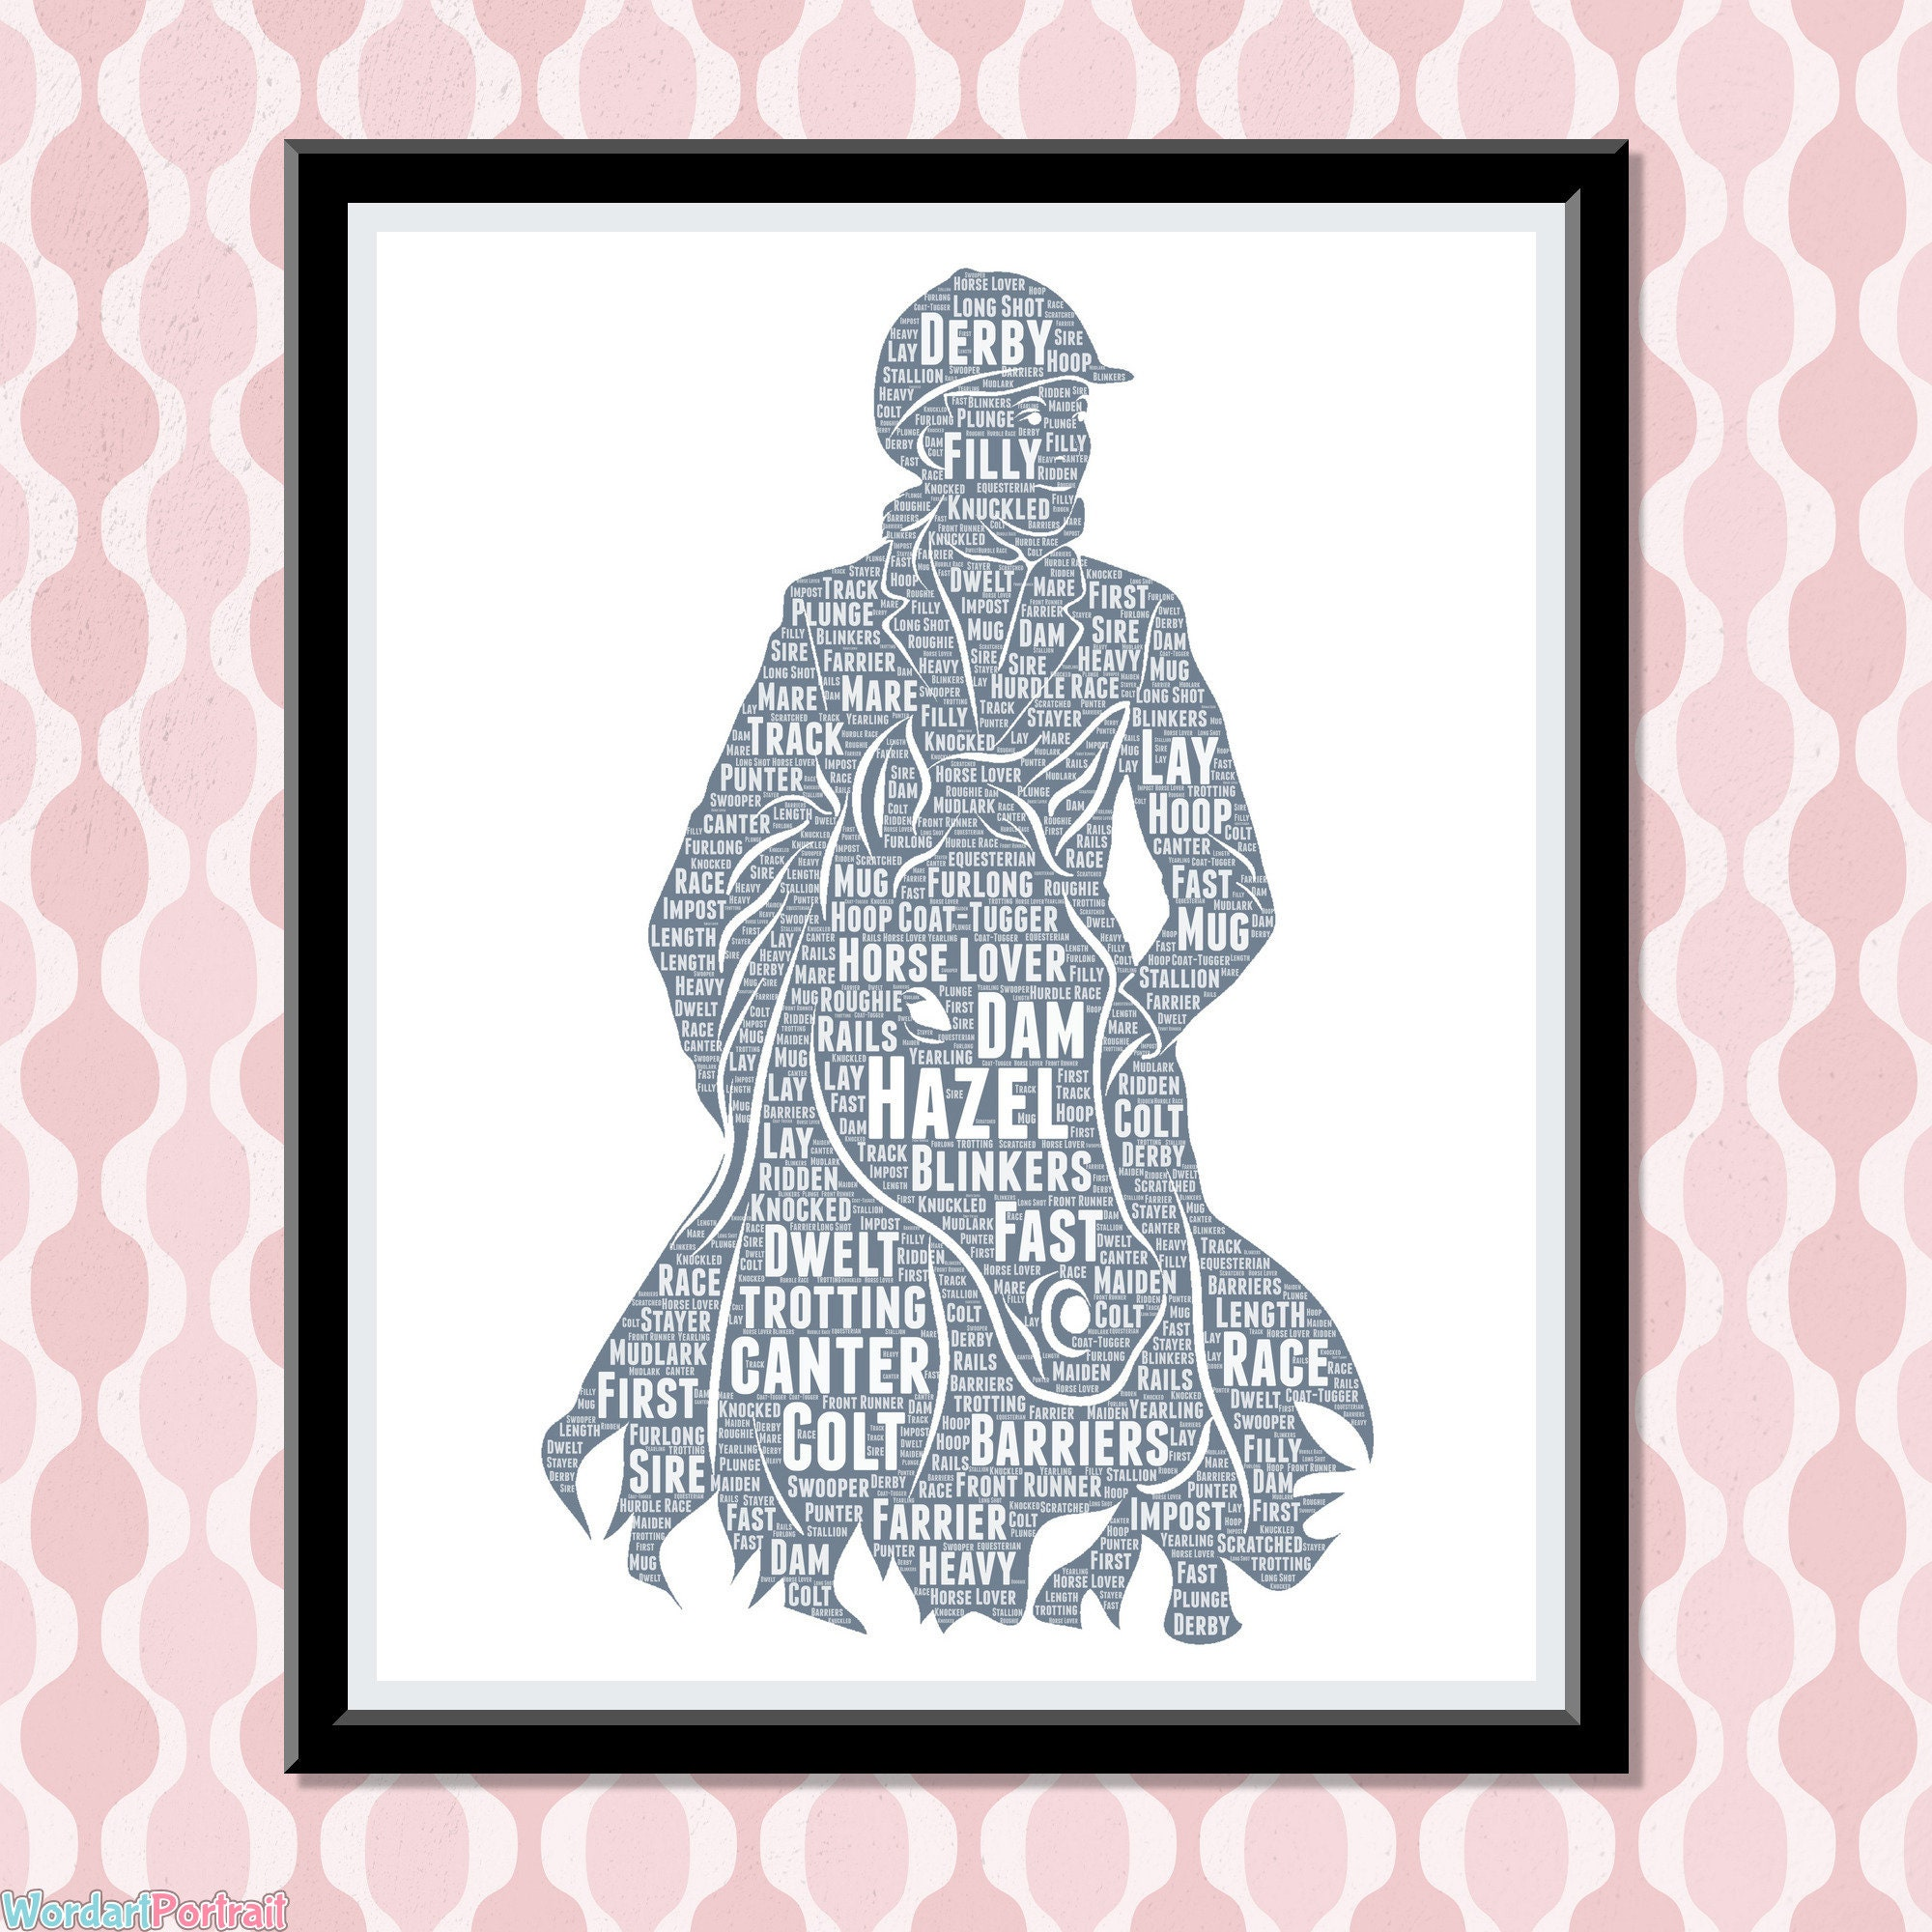 Personalized Gifts for Horse Lovers- Horse Rider Gift- For Equestrian Horse Riding- Enthusiast - Showjumping Dressage Gift Wordle Word Art